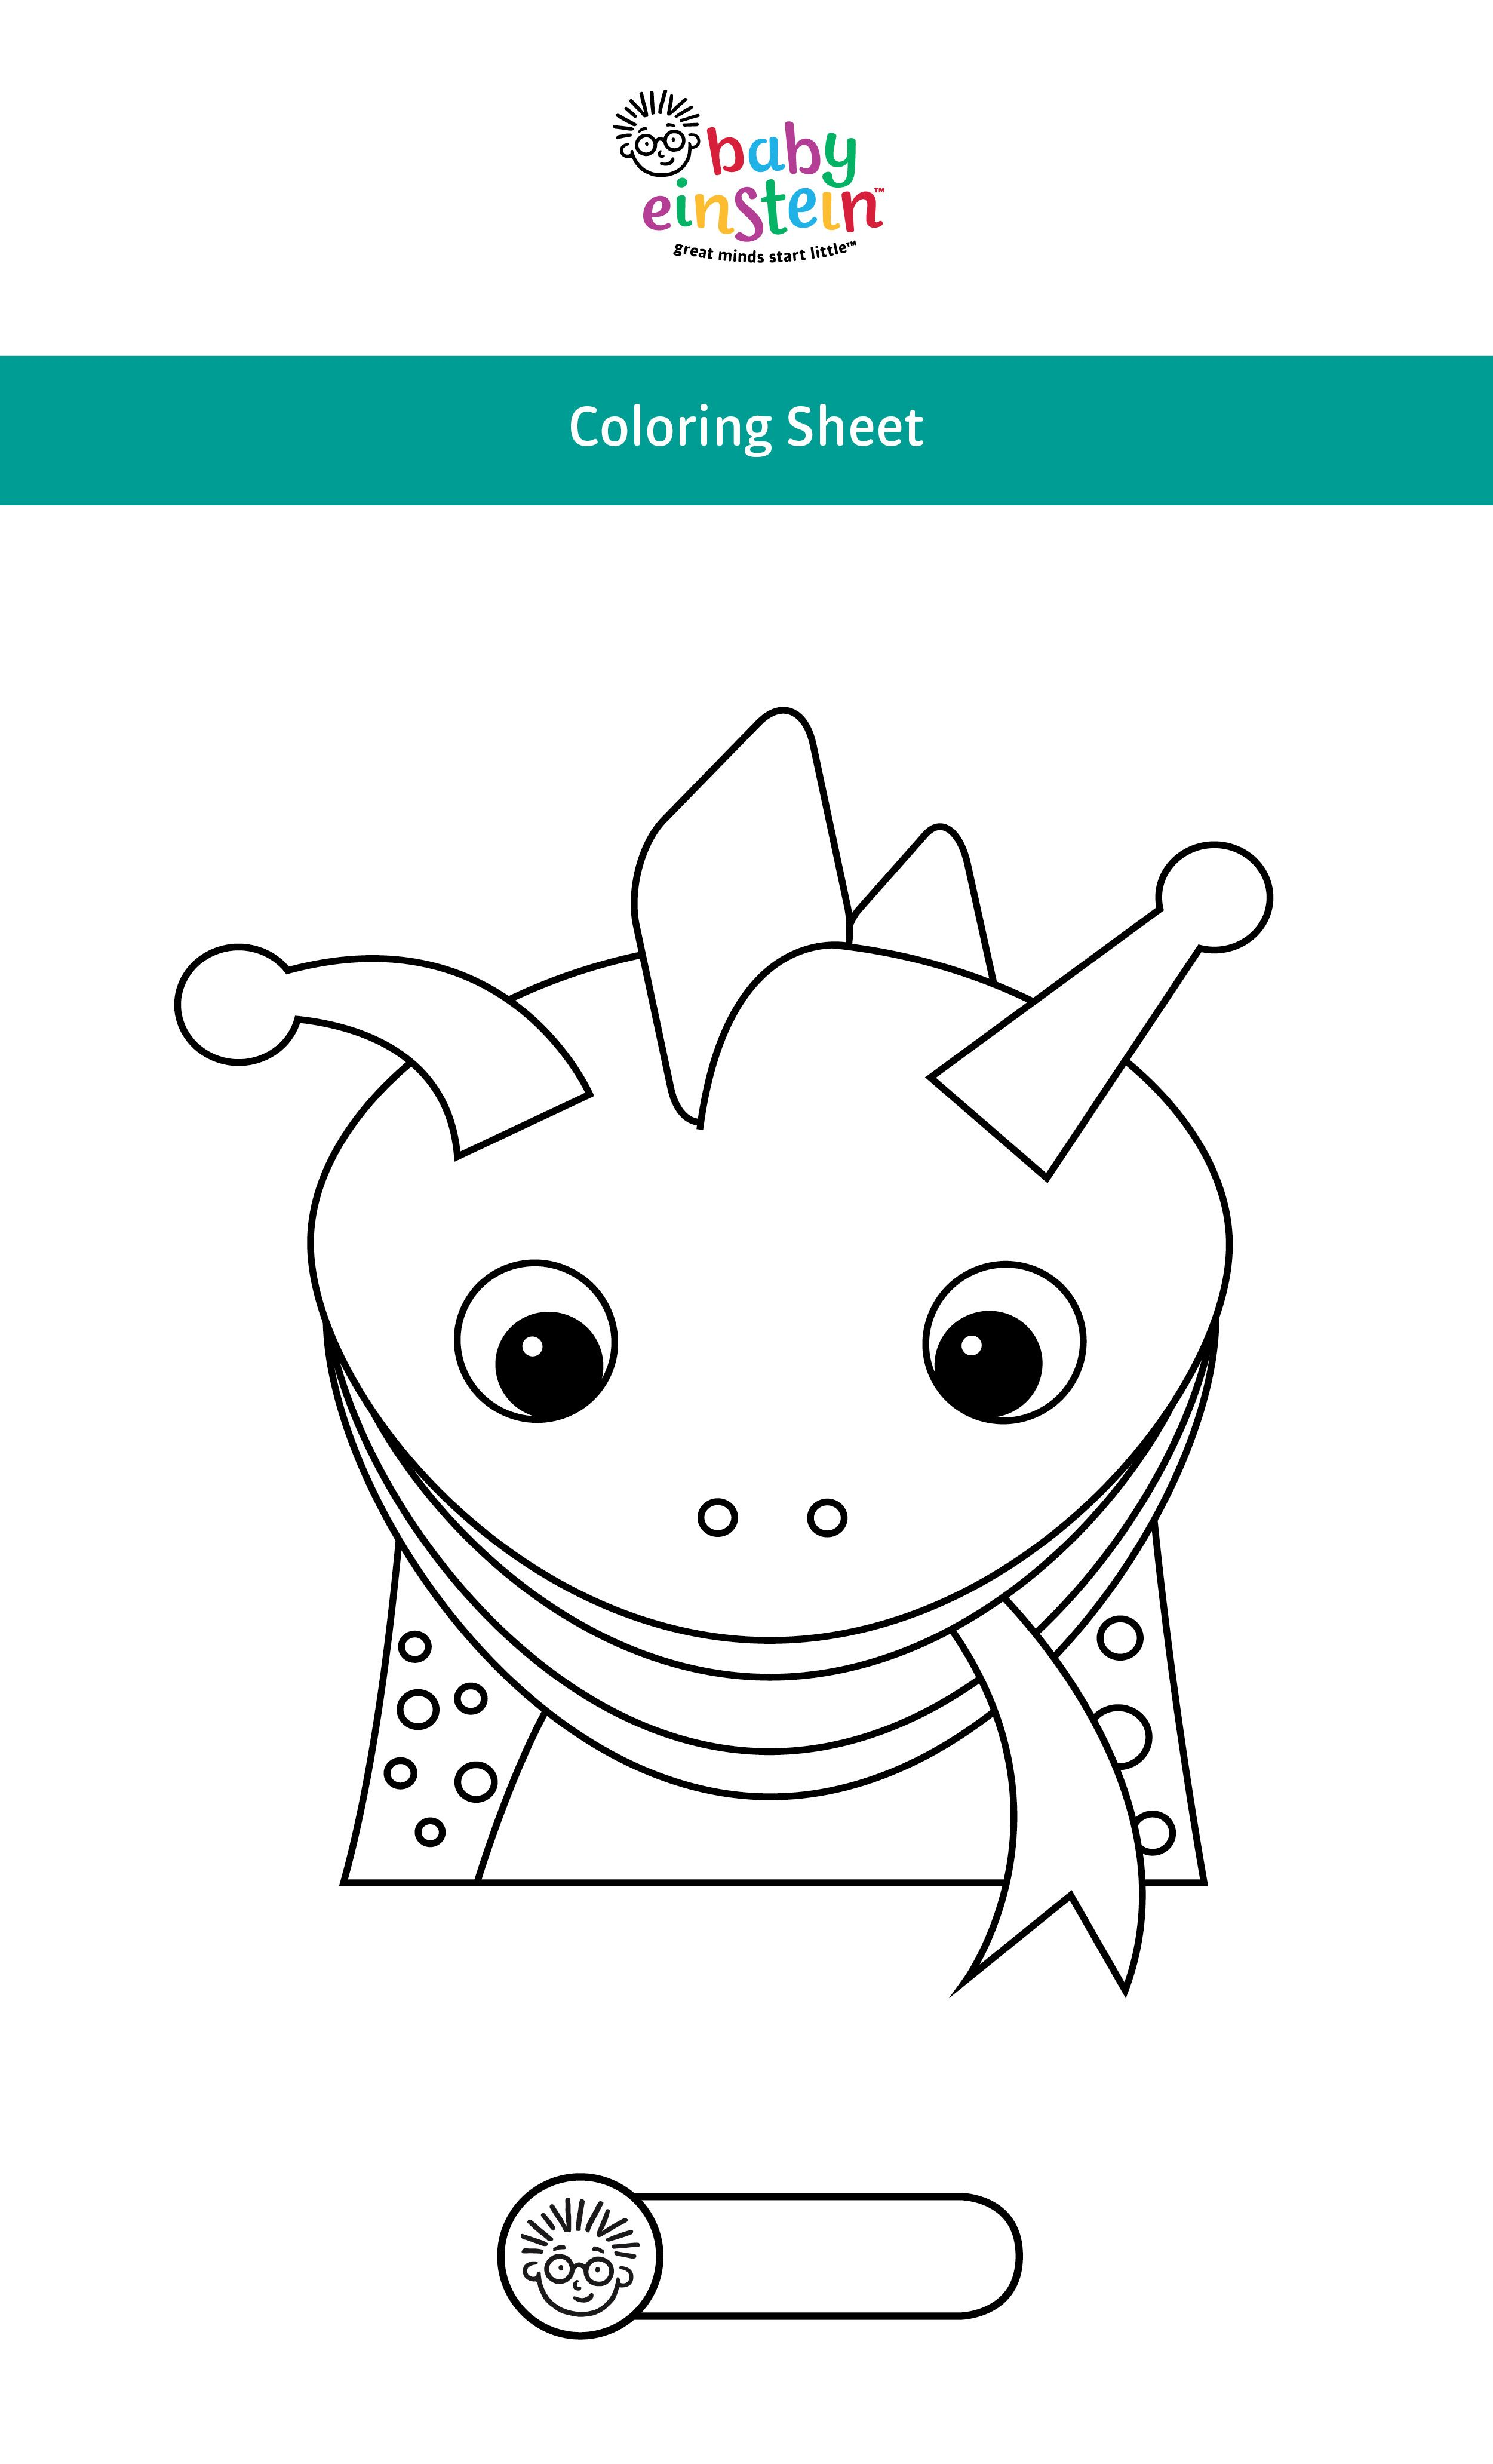 Adorable Baby Einstein coloring pages for your little one's birthday ...